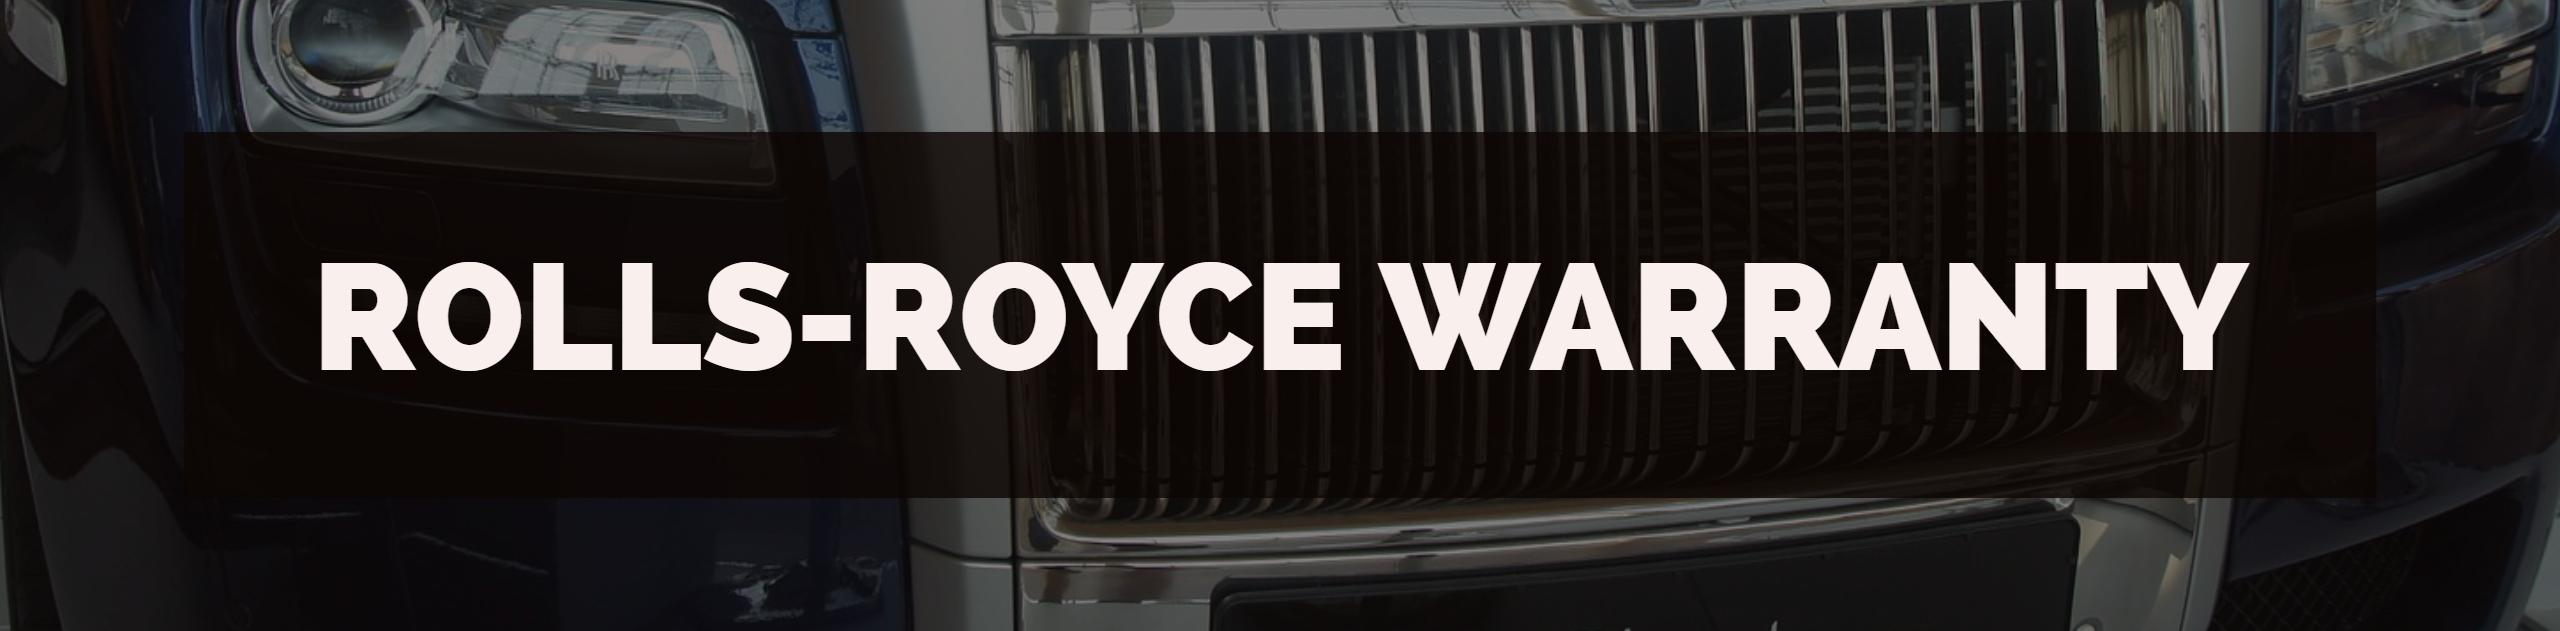 Rolls-Royce Warranty Processing, Training, Auditing